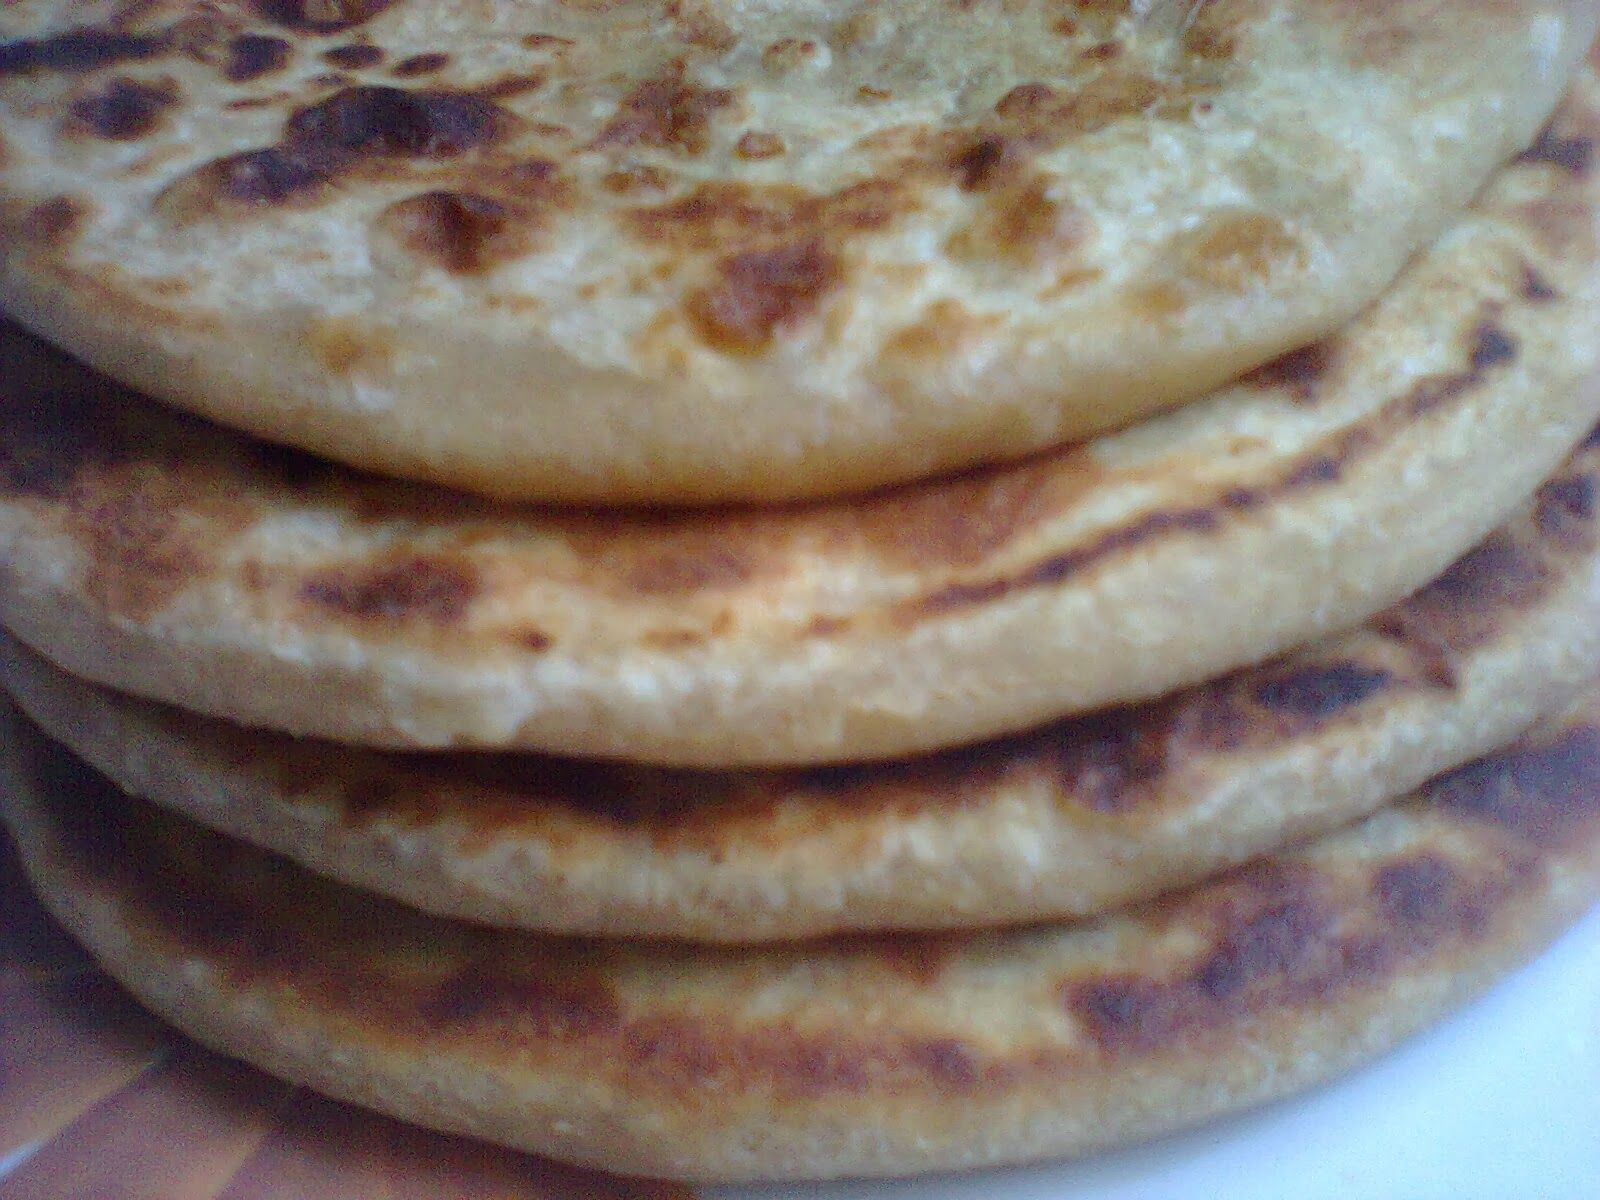 Vegetarianrasoi onion with cheese kulcha recipe kulcha learn how to make indian recipes indian food indian desserts etc in minutes with vegetarian rasoi forumfinder Choice Image